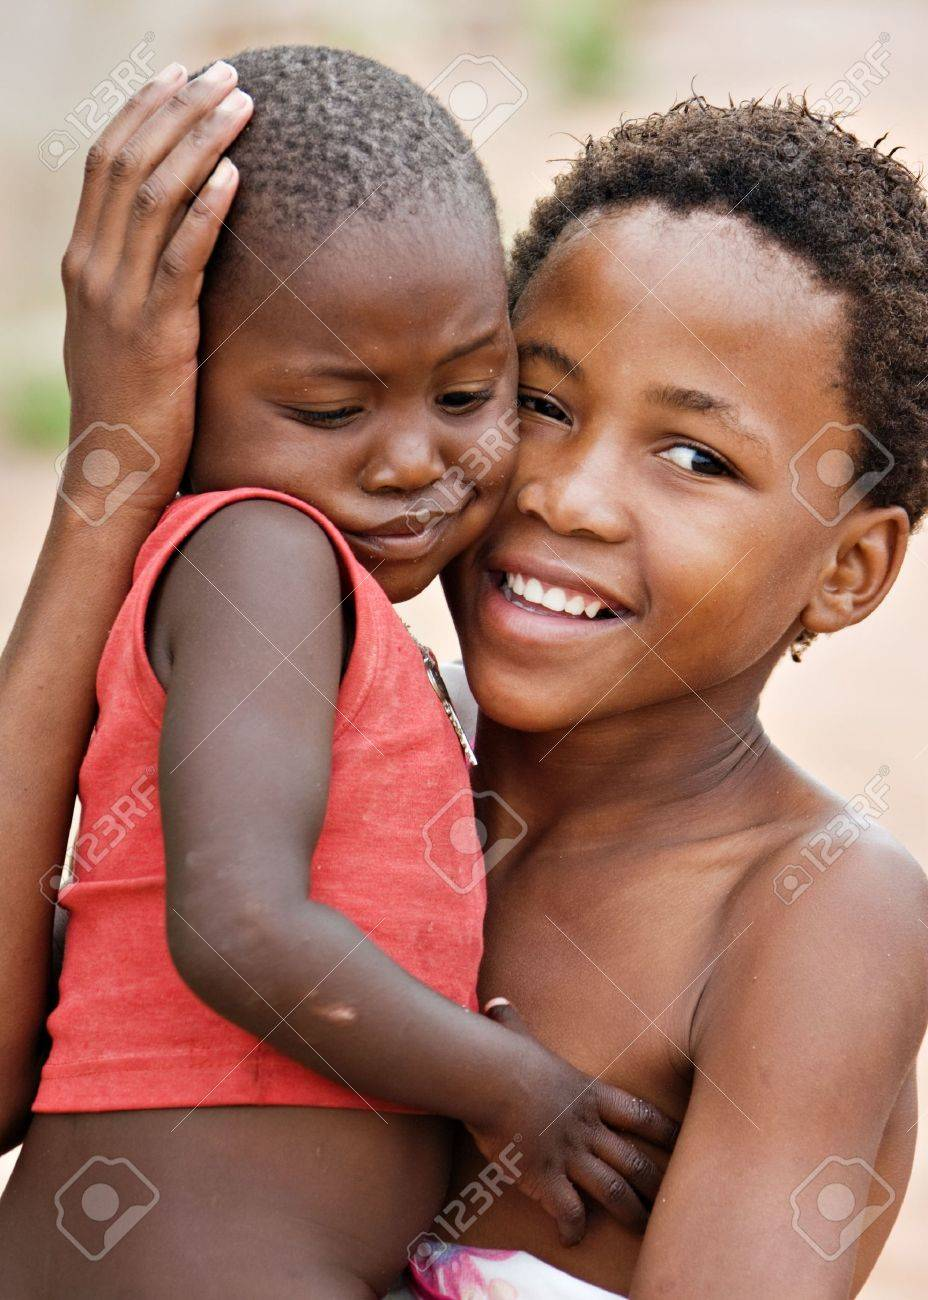 African children brother and sister, social issues, poverty, village near Kalahari desert Stock Photo - 2863300